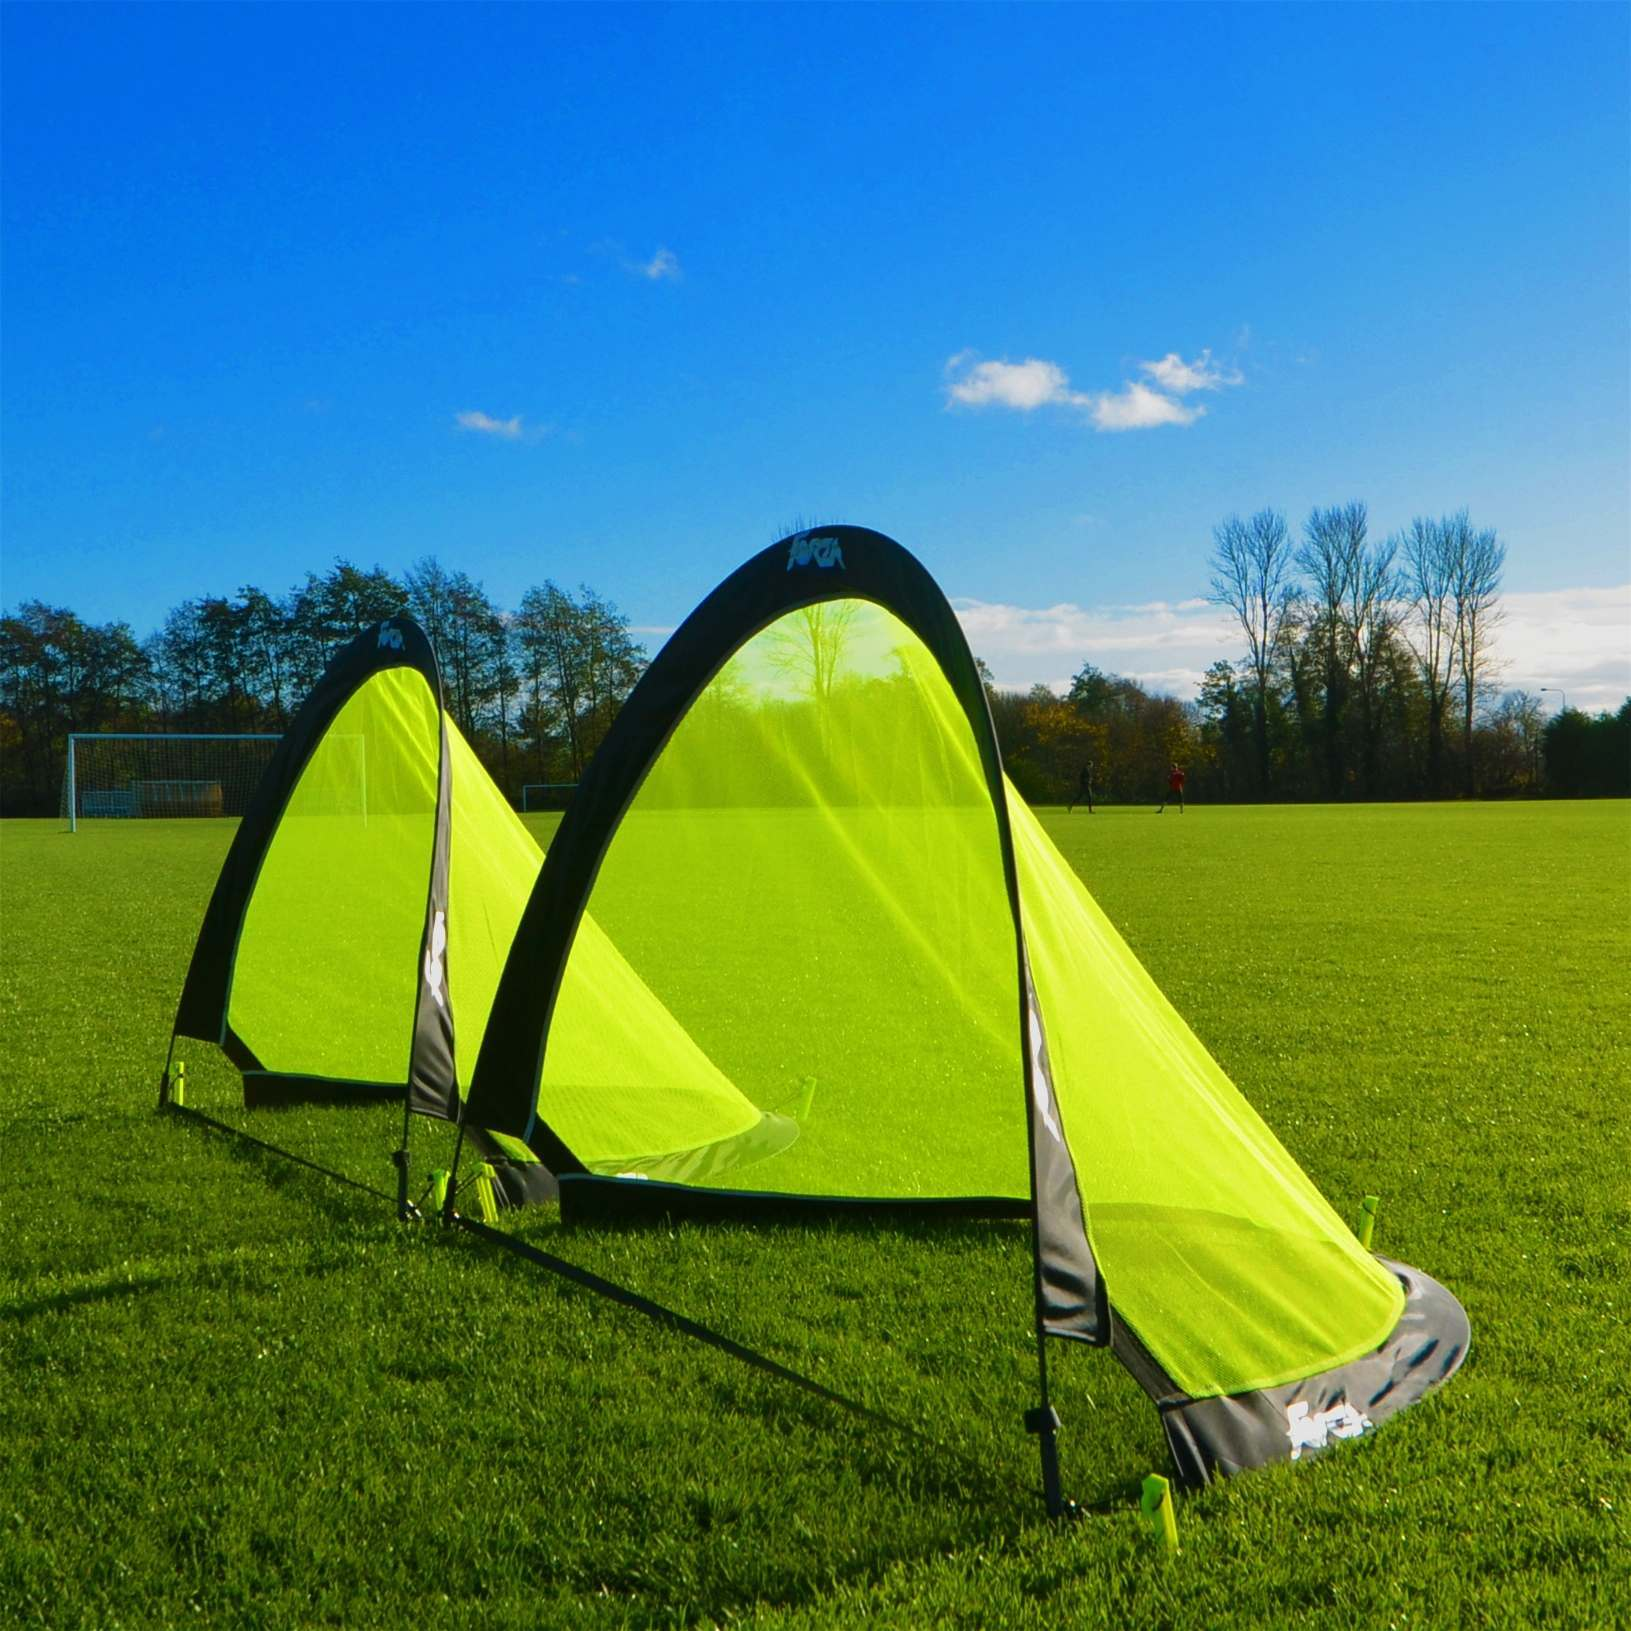 4ft FORZA FLASH Pop-Up Soccer Goal [Pair]